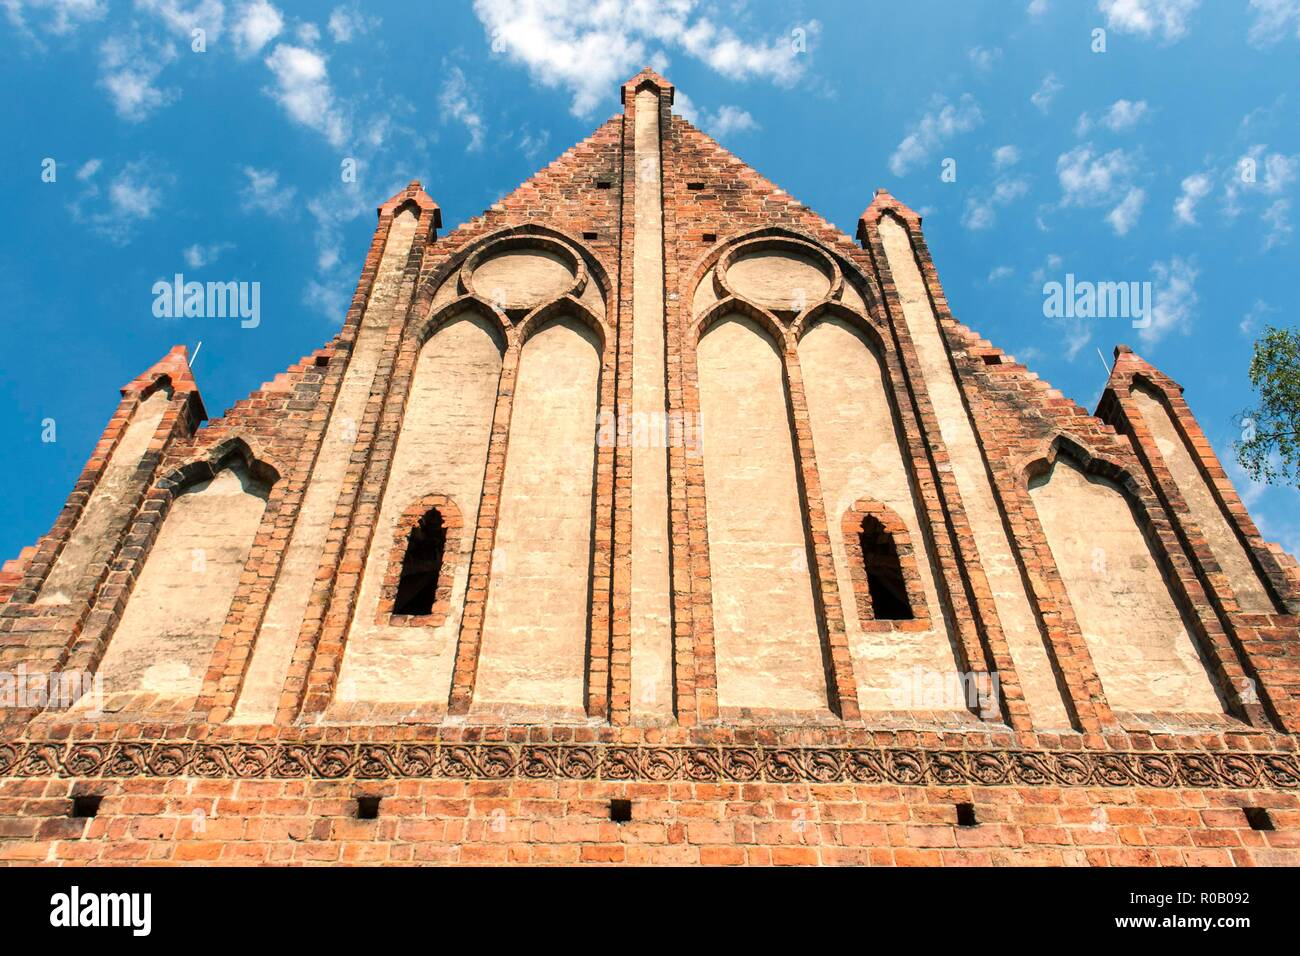 GERMANY, CHORIN,  Facade of the monastery Chorin, .It is a good example of brick Gothic typical for northern Germany - Stock Image